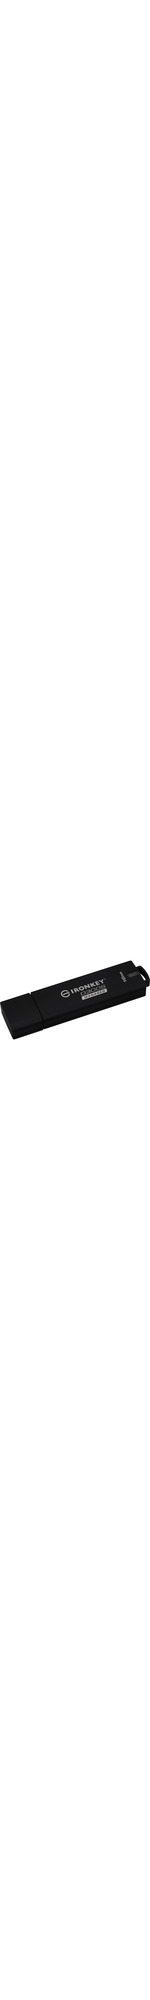 Kingston IronKey D300 D300S 16 GB USB 3.1 Flash Drive - Anthracite - 256-bit AES - TAA Compliant